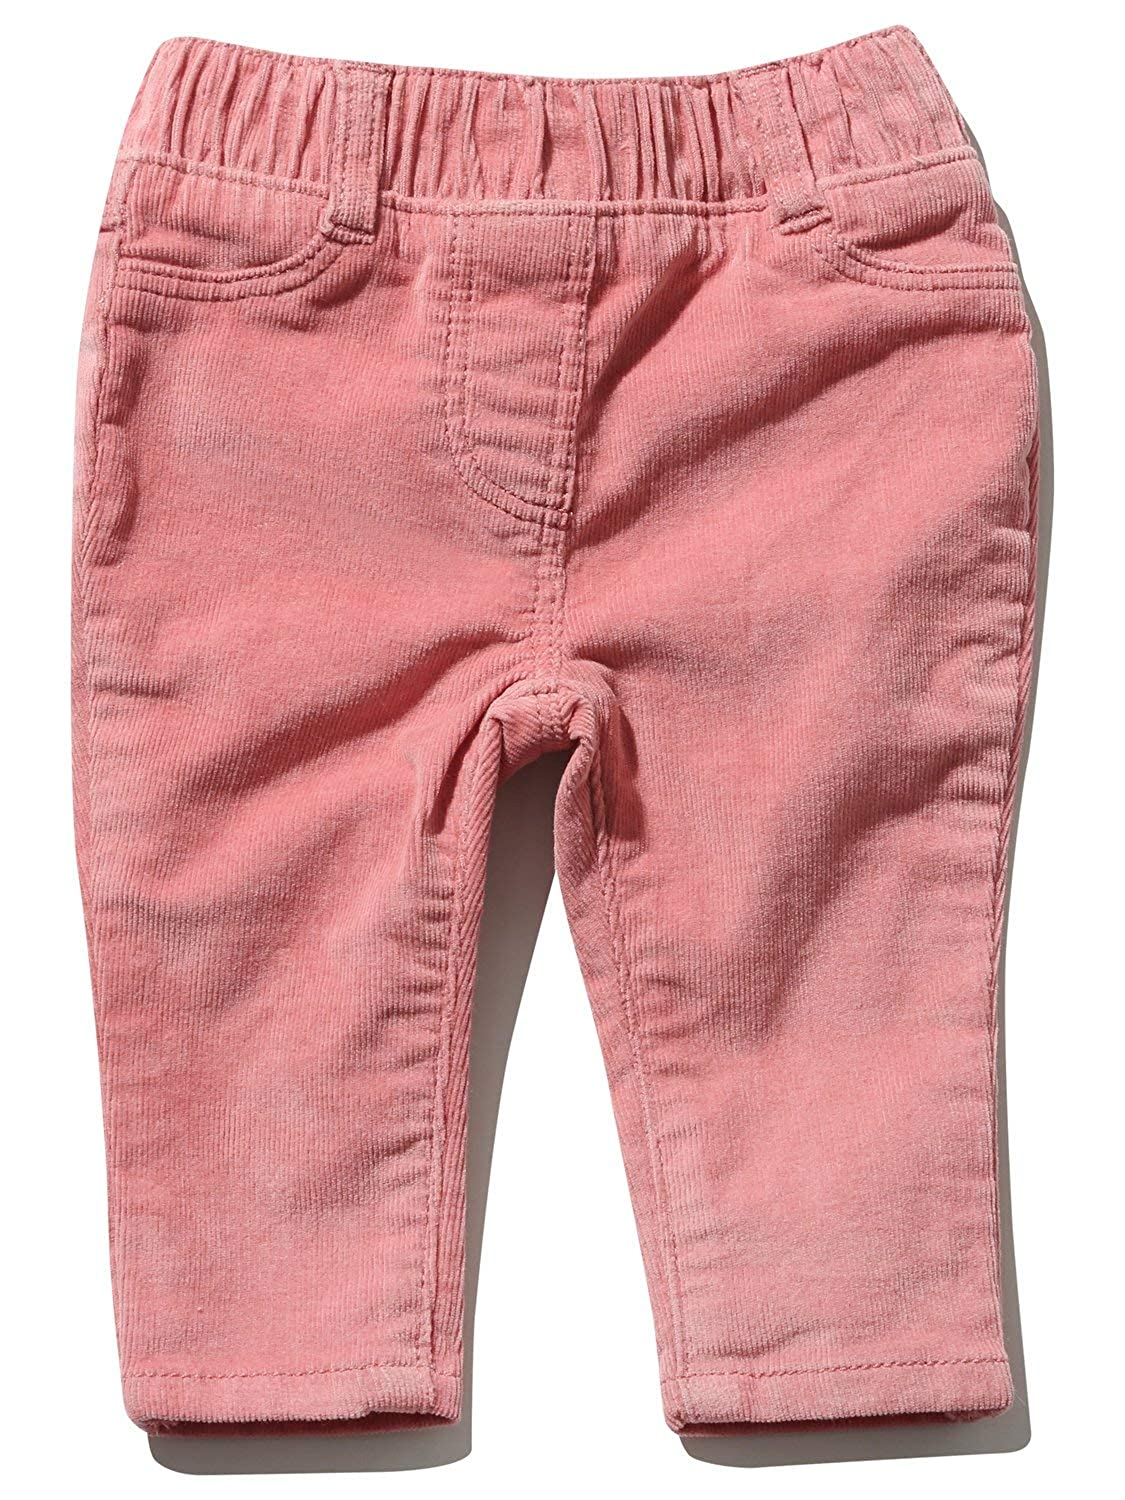 M& Co Baby Girl Cotton Rich Pink Cord Stretch Waistband Full Length Jeggings